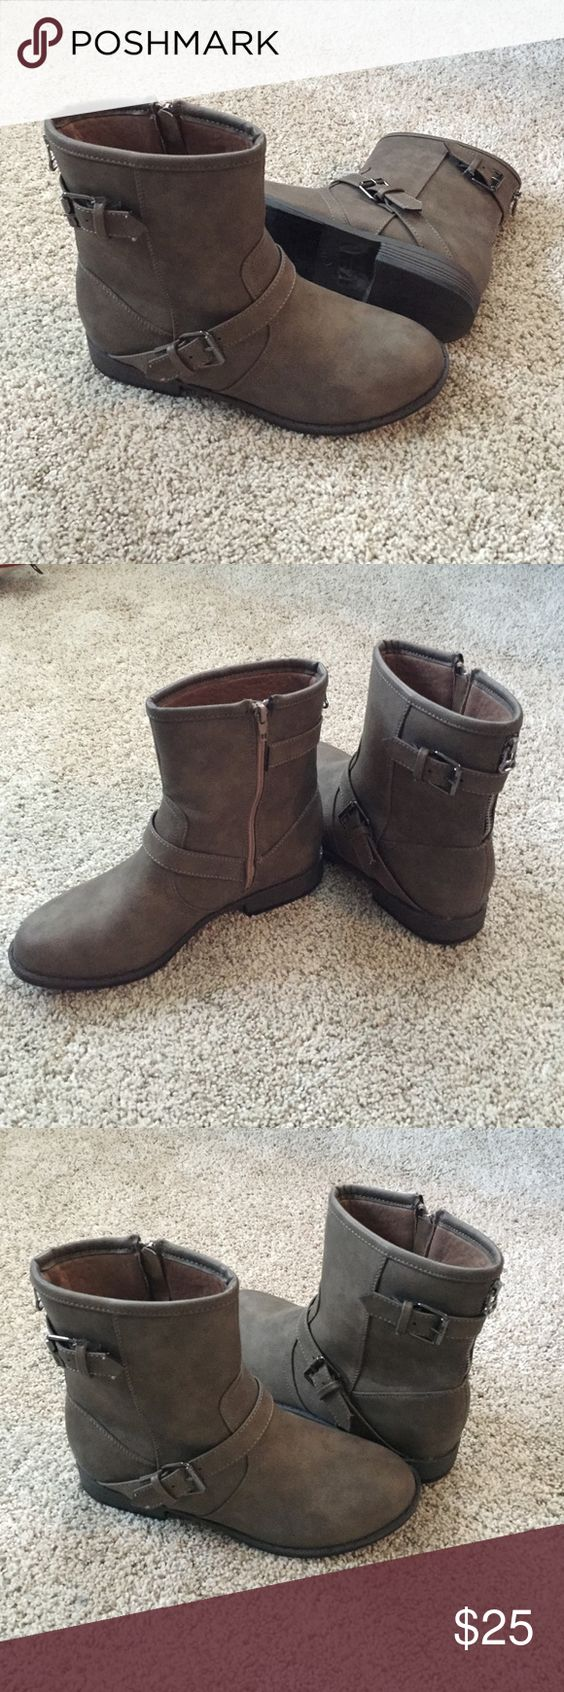 Twisted Ankle Boots- Size 9 Size 9 Twisted Ankle Boots, only worn once for about an hour. Excellent condition. They are a dark beige color. Twisted Shoes Ankle Boots & Booties